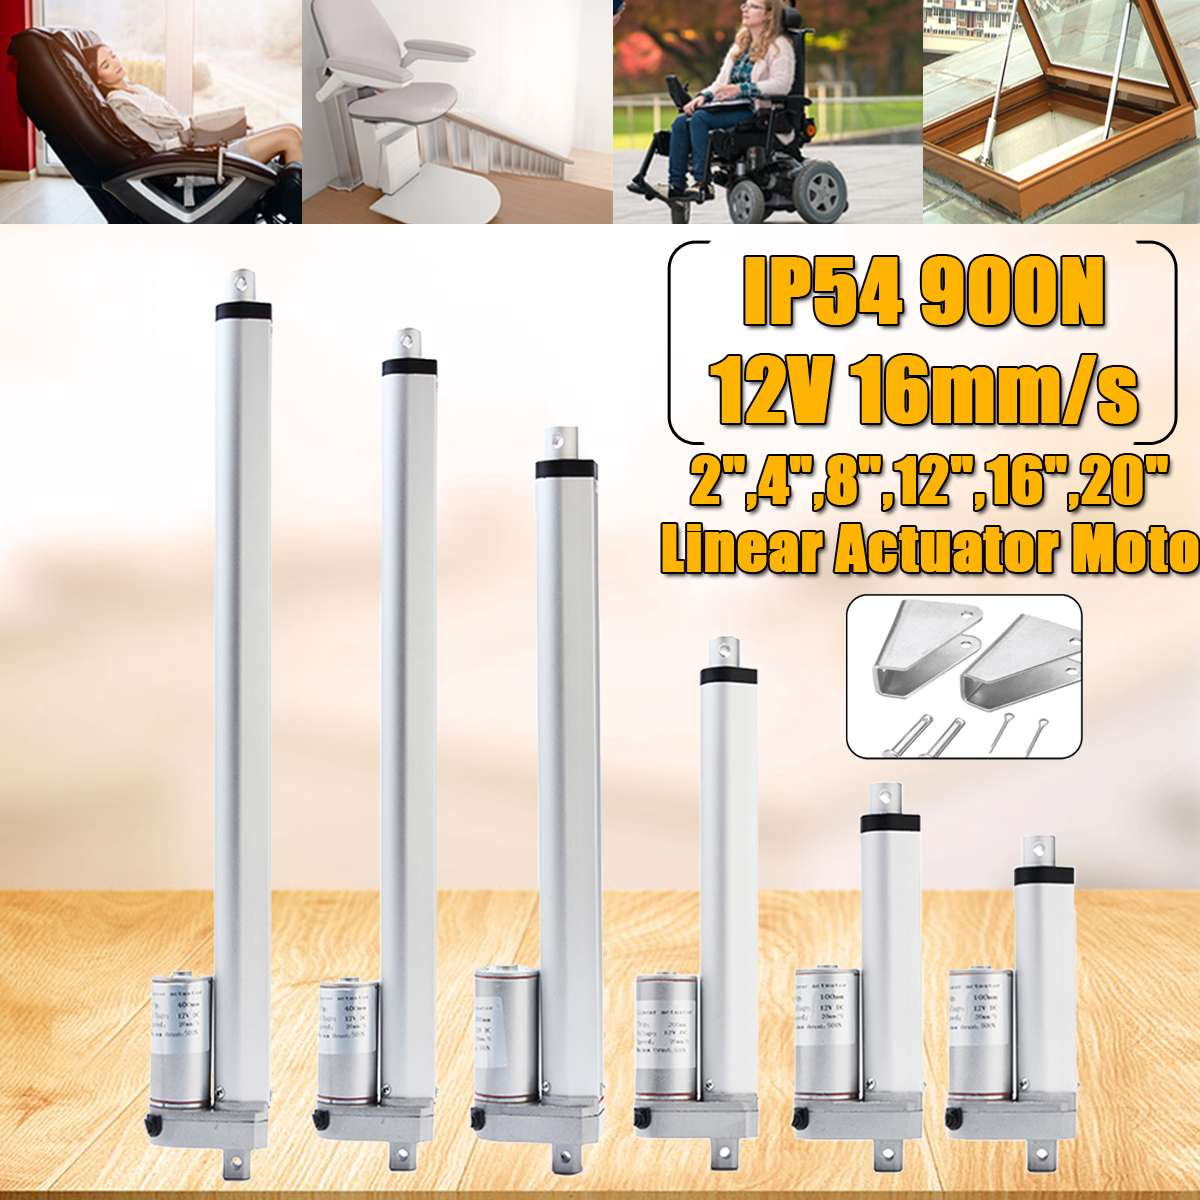 2 4 8 12 16 20 inch 900N 12V 16mm / s Small DC Electric Push Rod White Material Aluminum Alloy Linear Actuator Motor2 4 8 12 16 20 inch 900N 12V 16mm / s Small DC Electric Push Rod White Material Aluminum Alloy Linear Actuator Motor